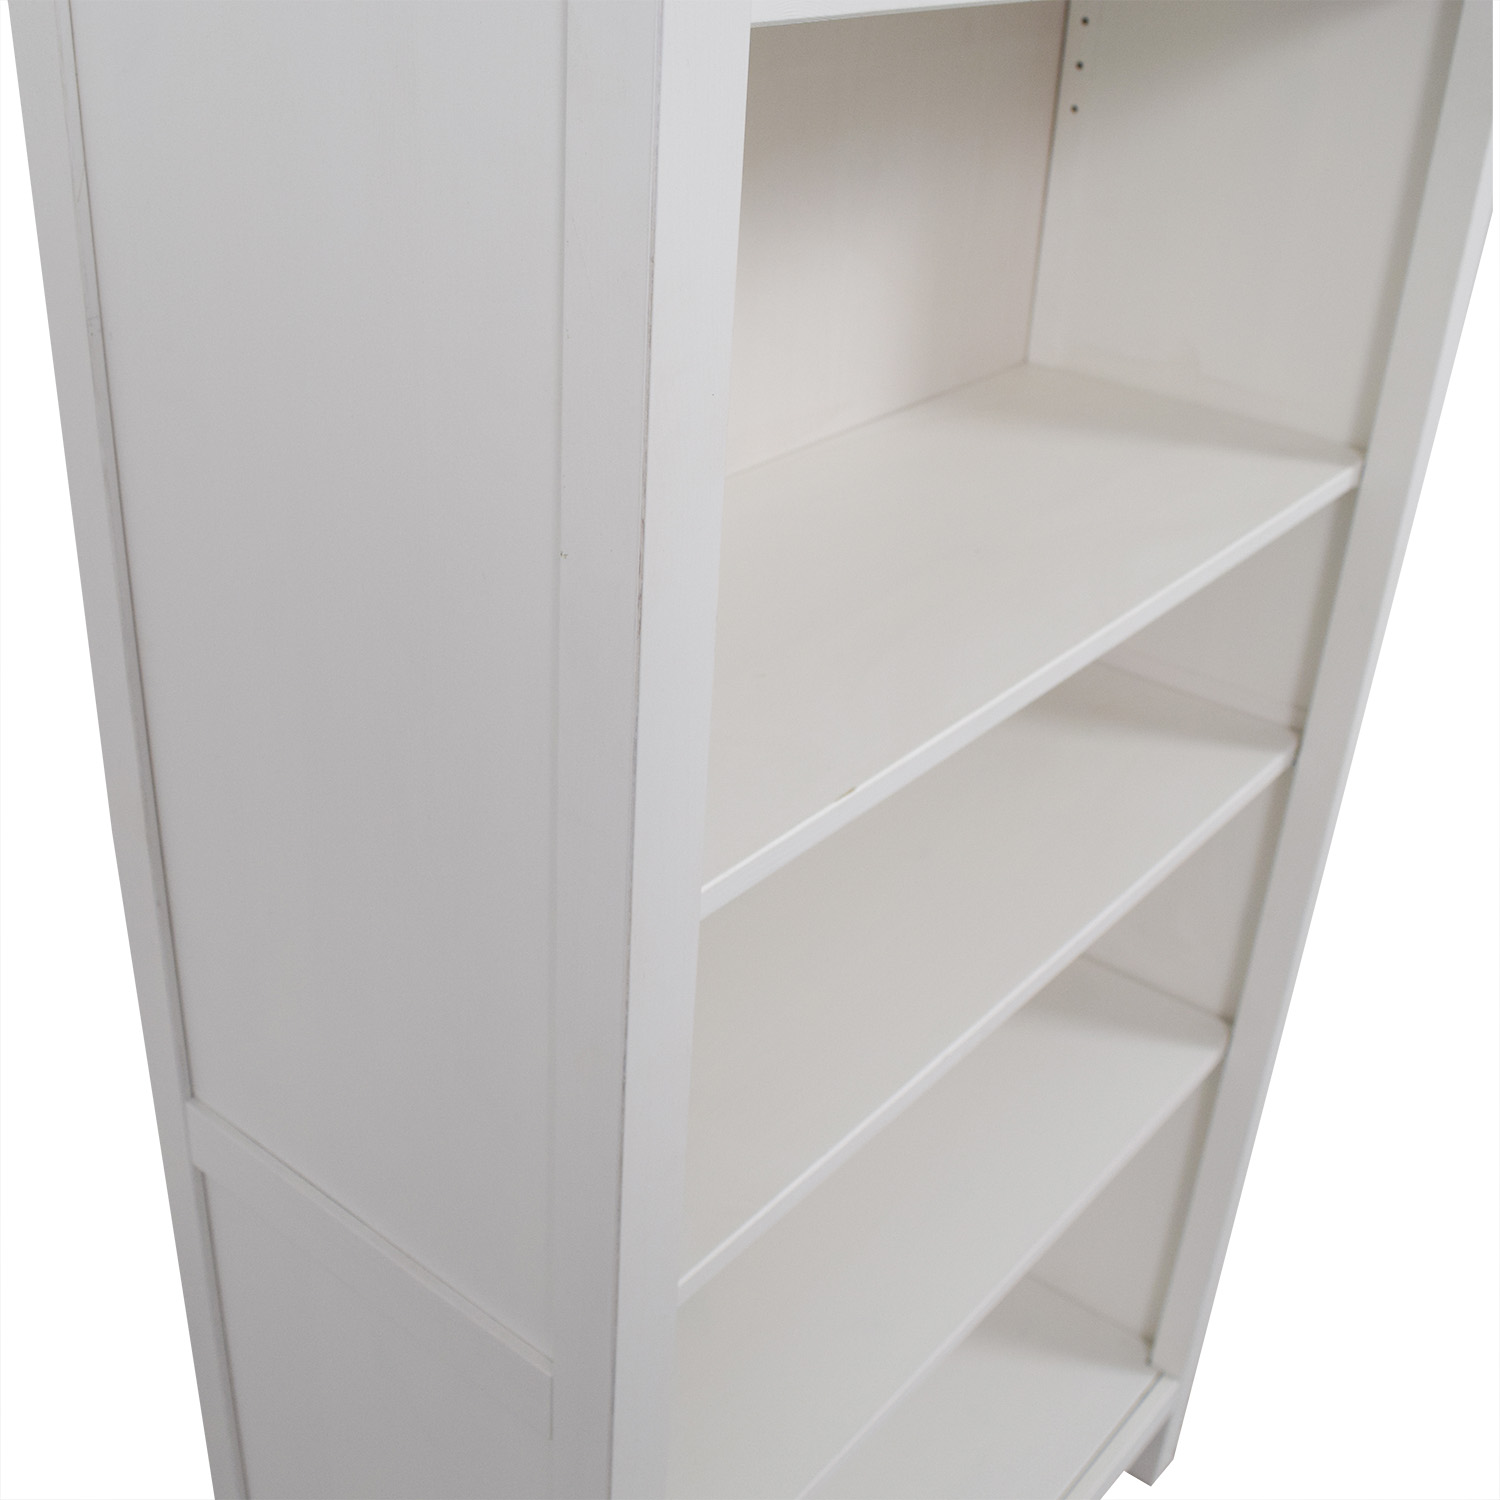 53 off ikea ikea white hemnes bookshelf storage. Black Bedroom Furniture Sets. Home Design Ideas